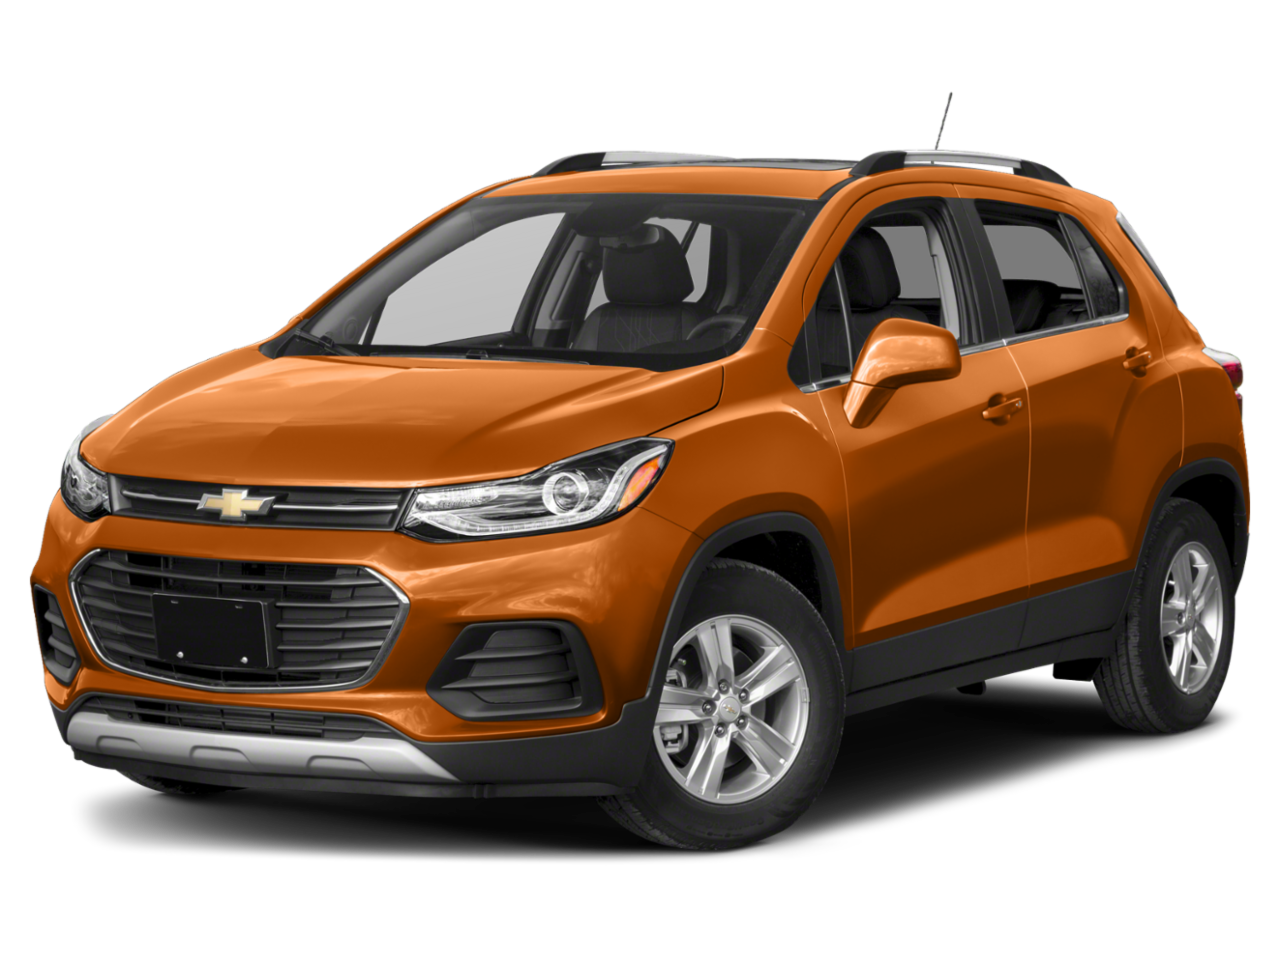 image-0 2019 Chevrolet Trax